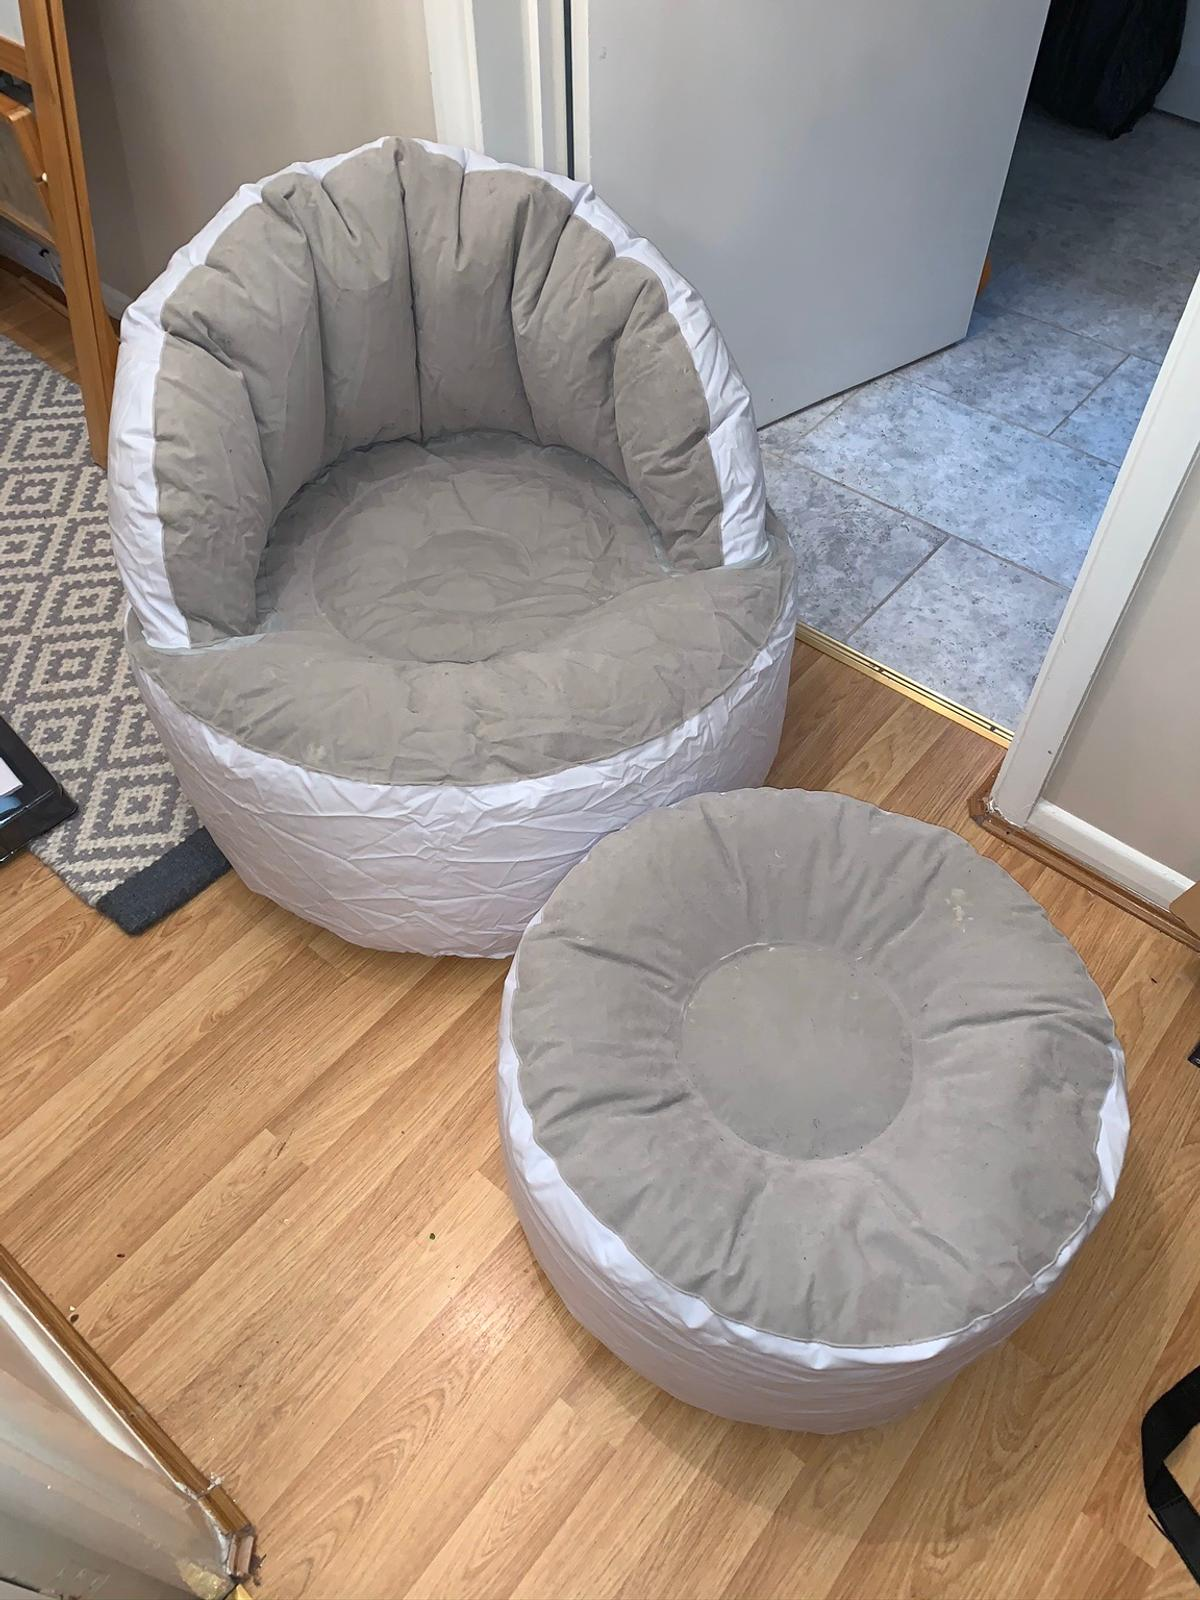 Perfect condition barely used - inflatable chair and stool. £10 Ono can post for £3.95